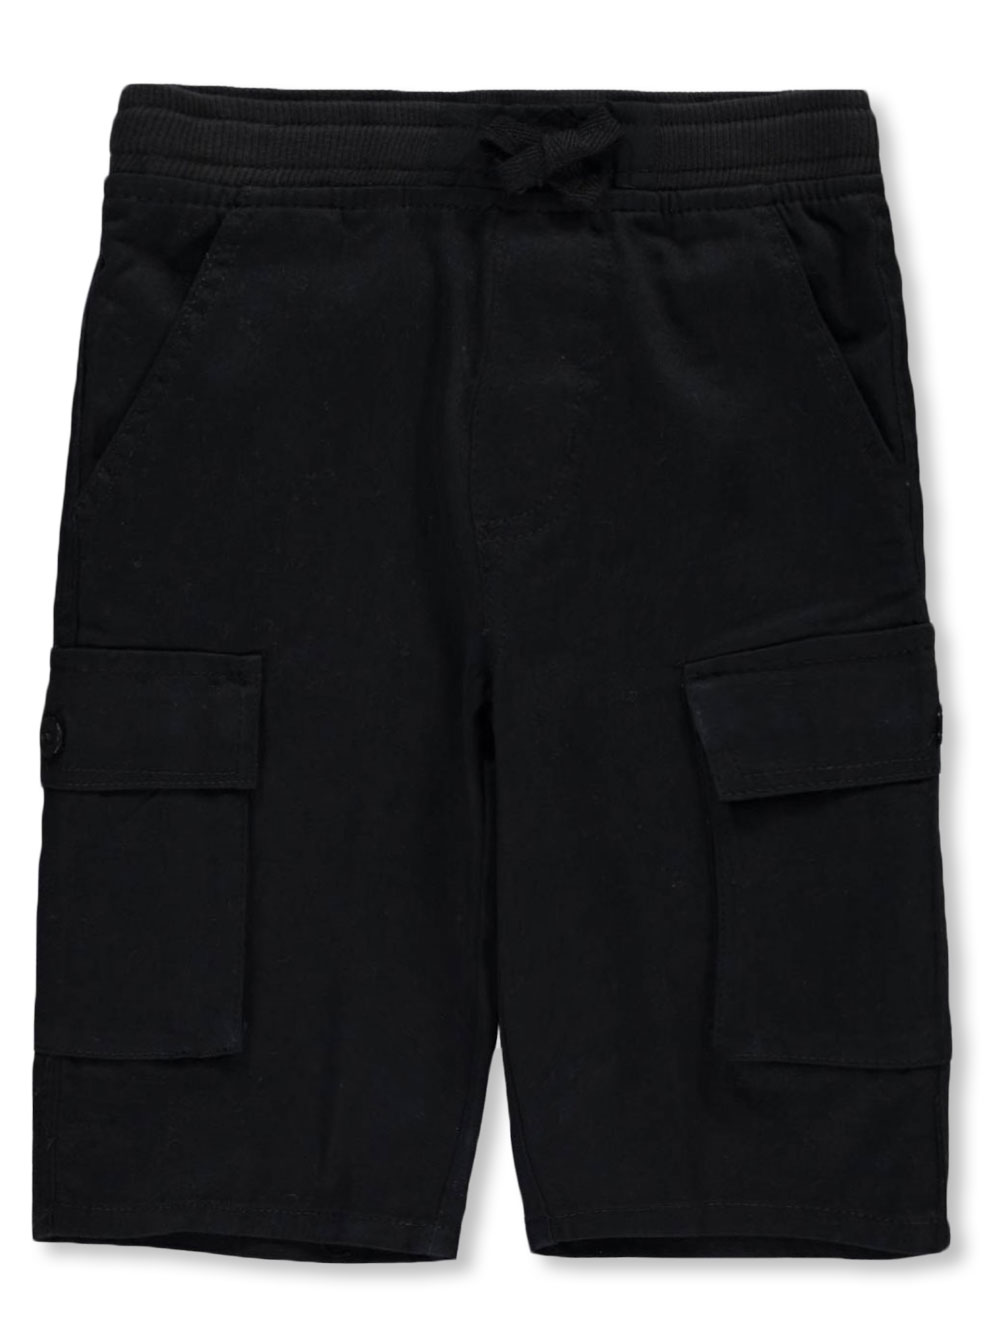 Quad Seven Boys Cargo Shorts